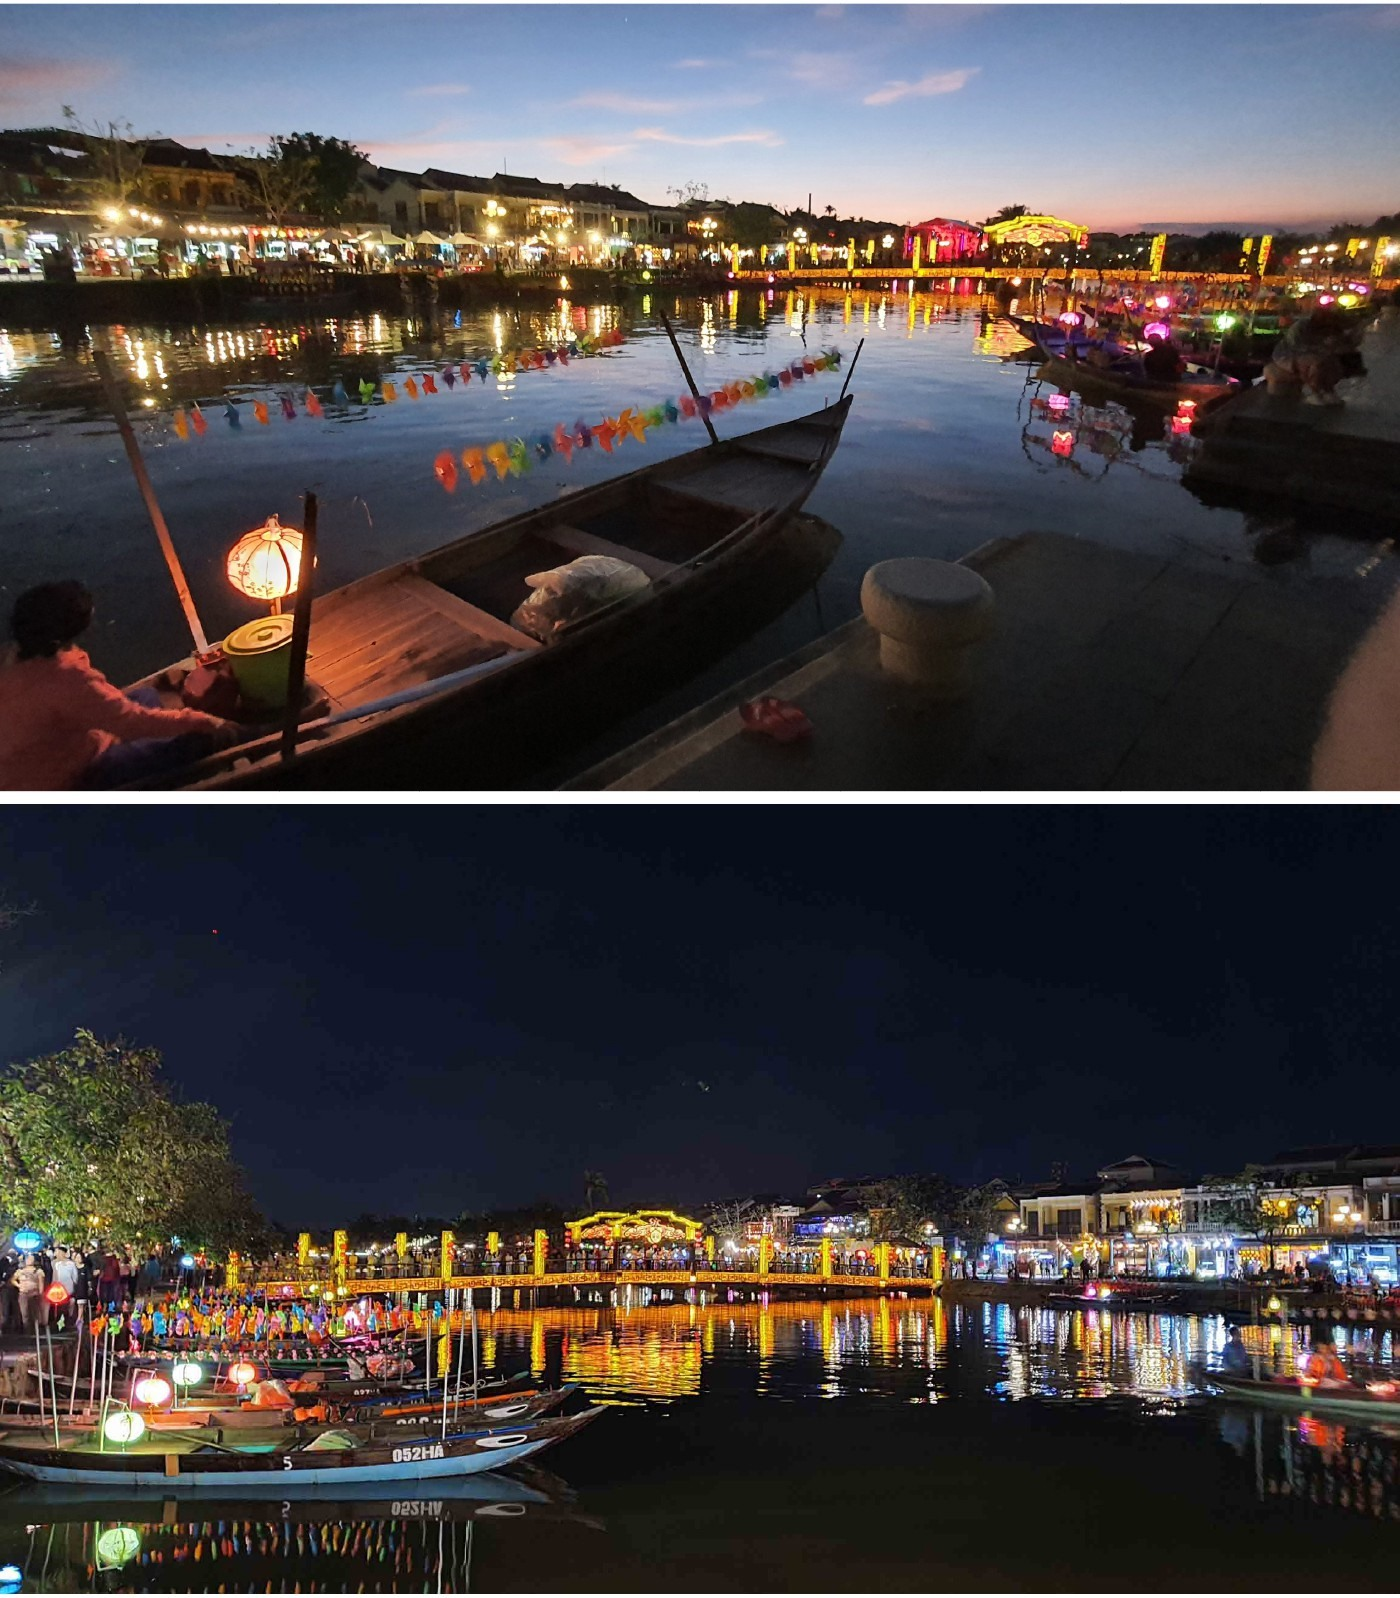 Flower garlands and colourful lanterns on the Hoai river